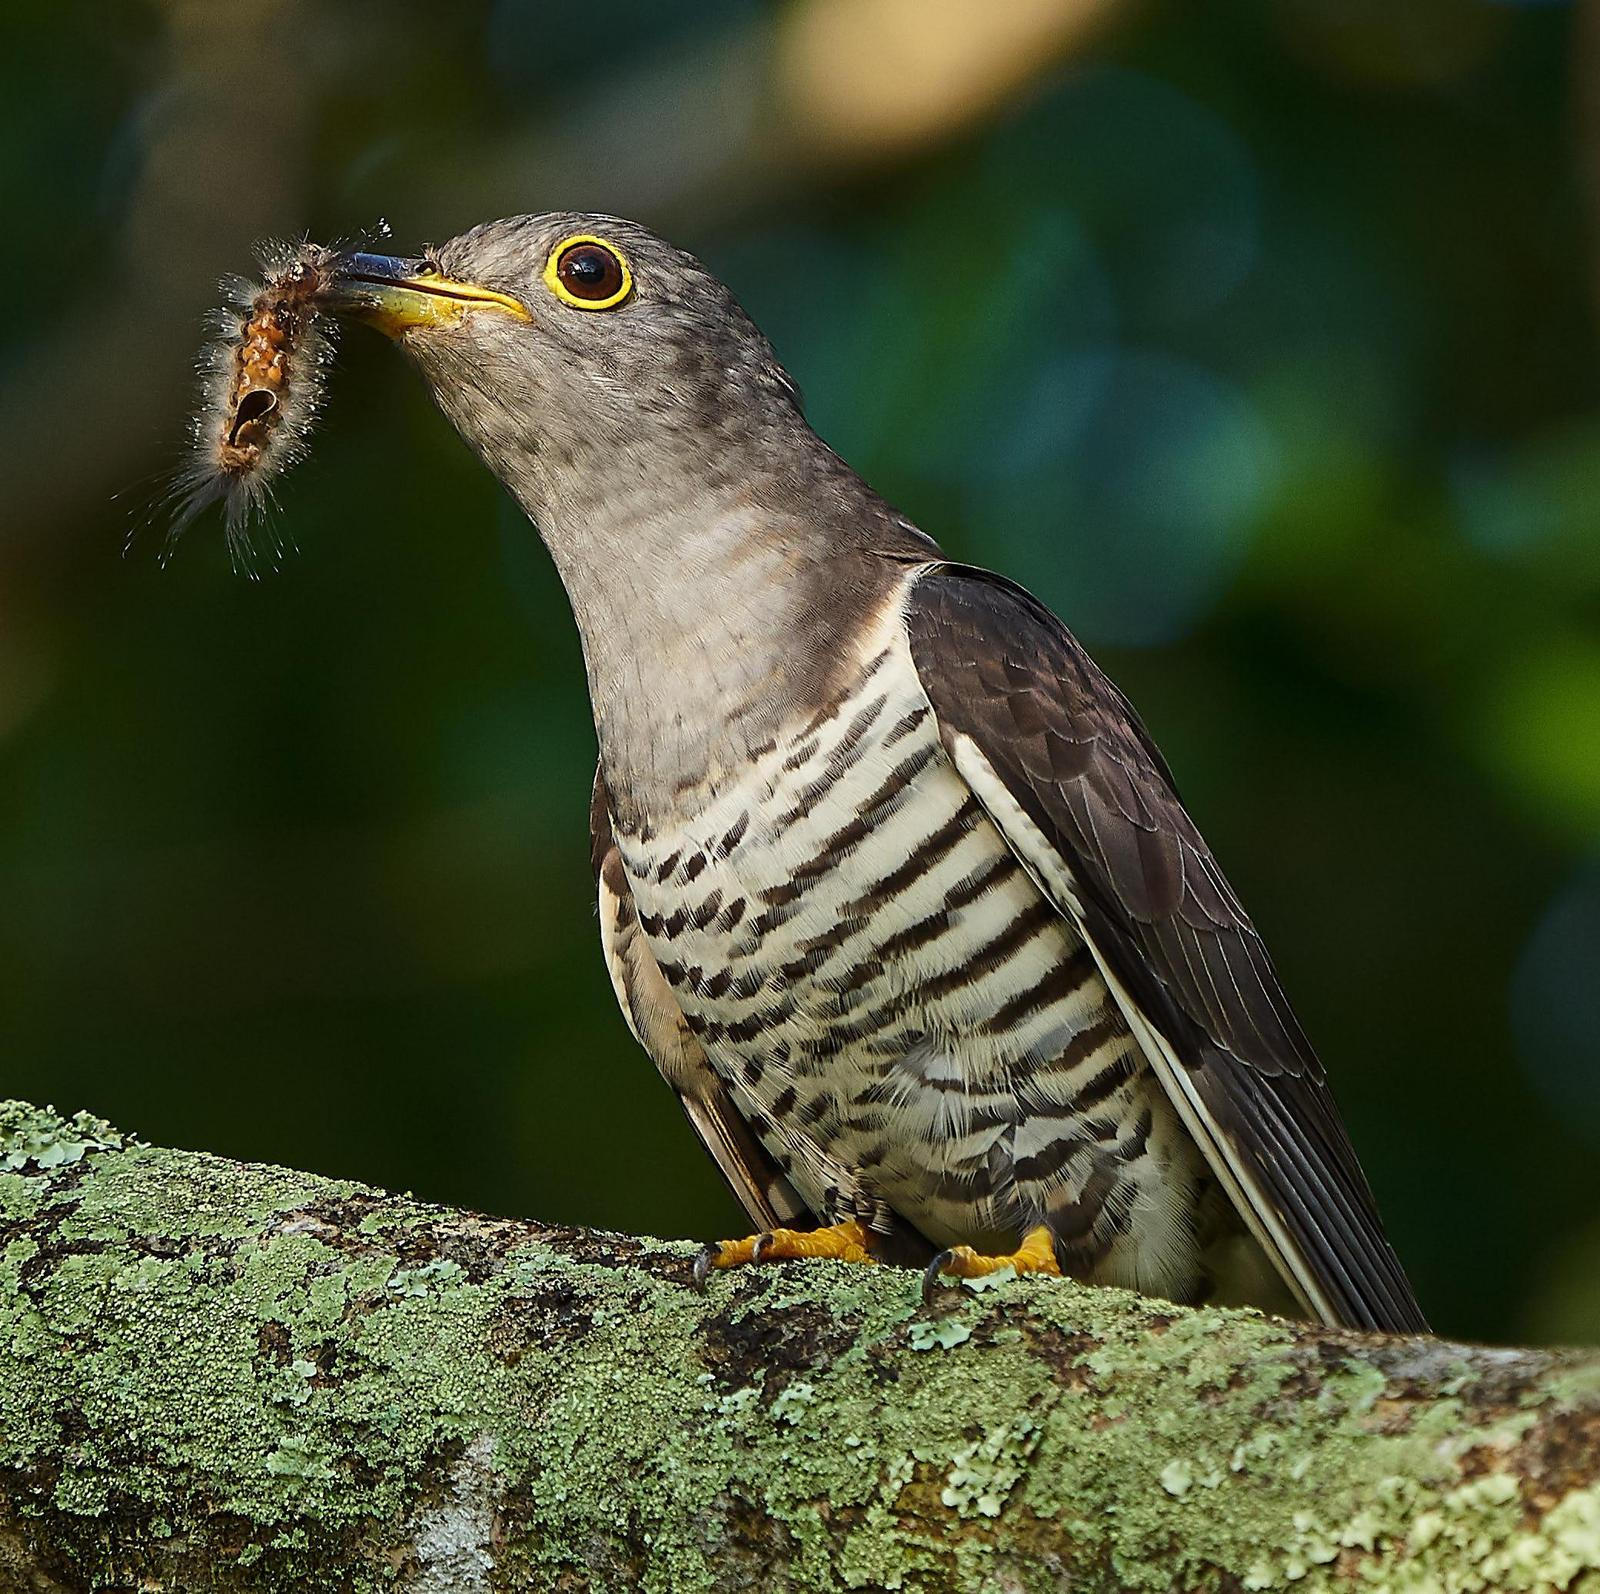 Indian Cuckoo Photo by Steven Cheong